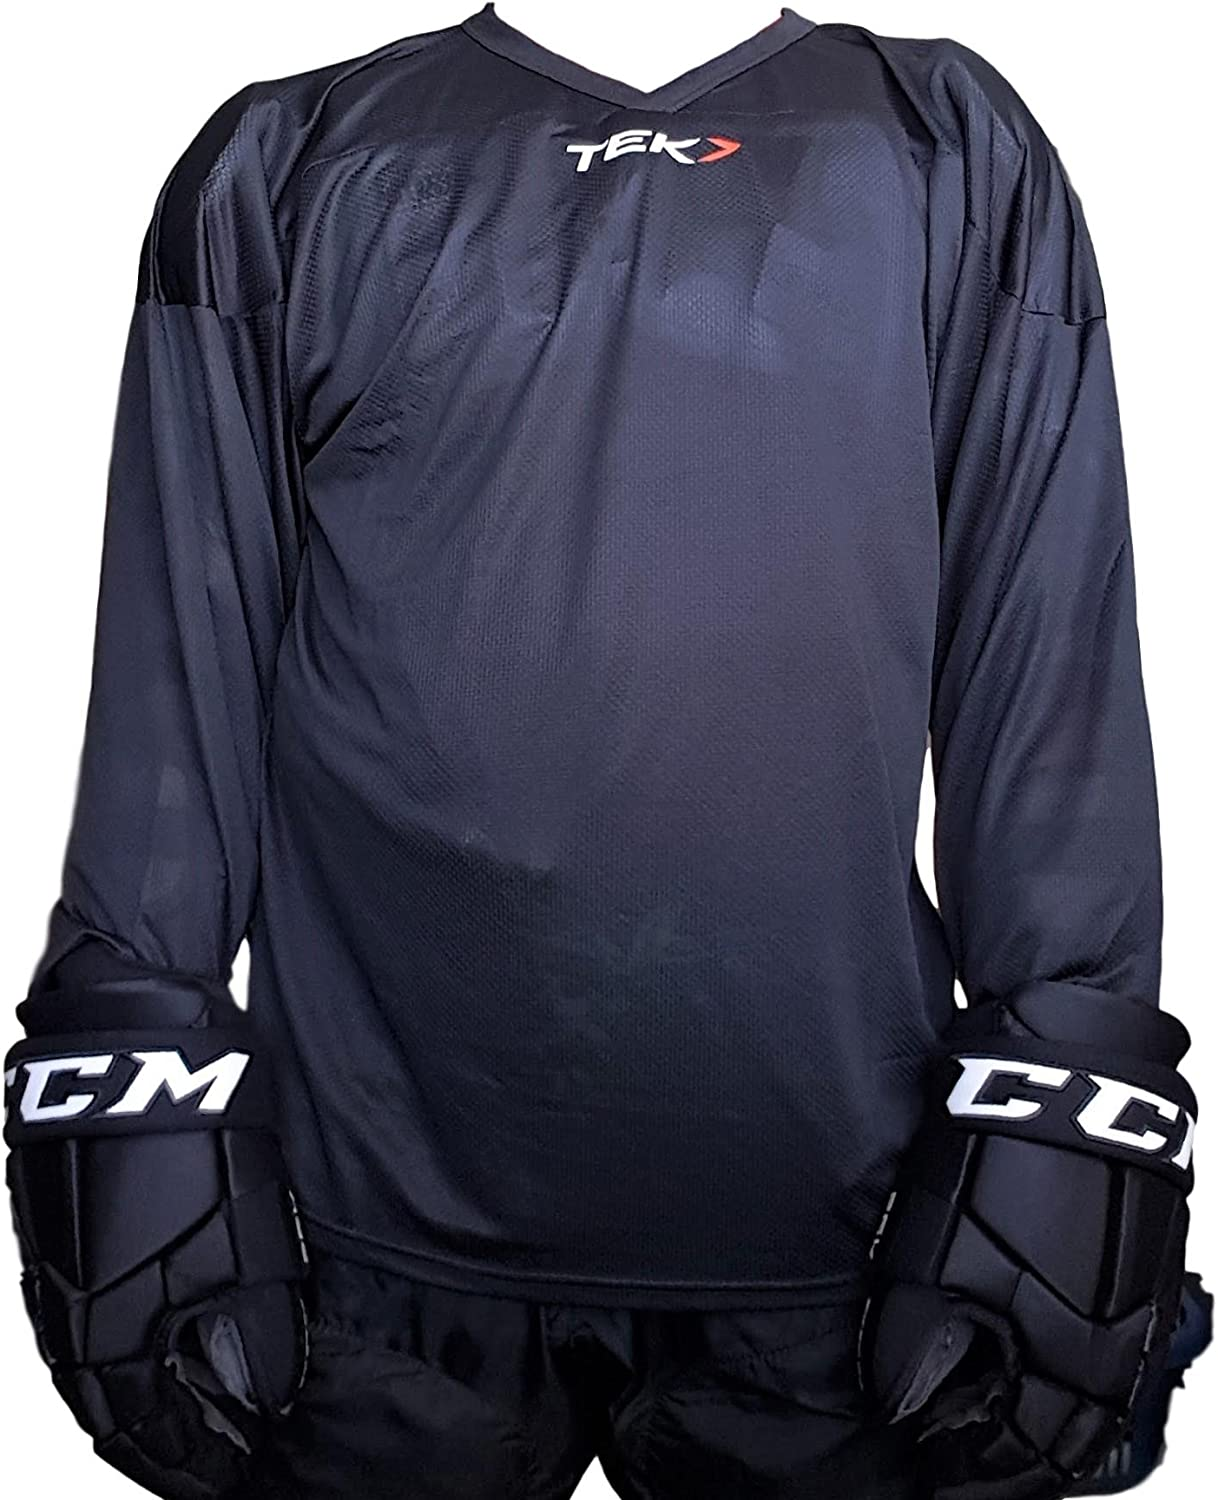 Practice Hockey Jersey Breathable Solid Color Hockey Jersey Adult//Senior mesh